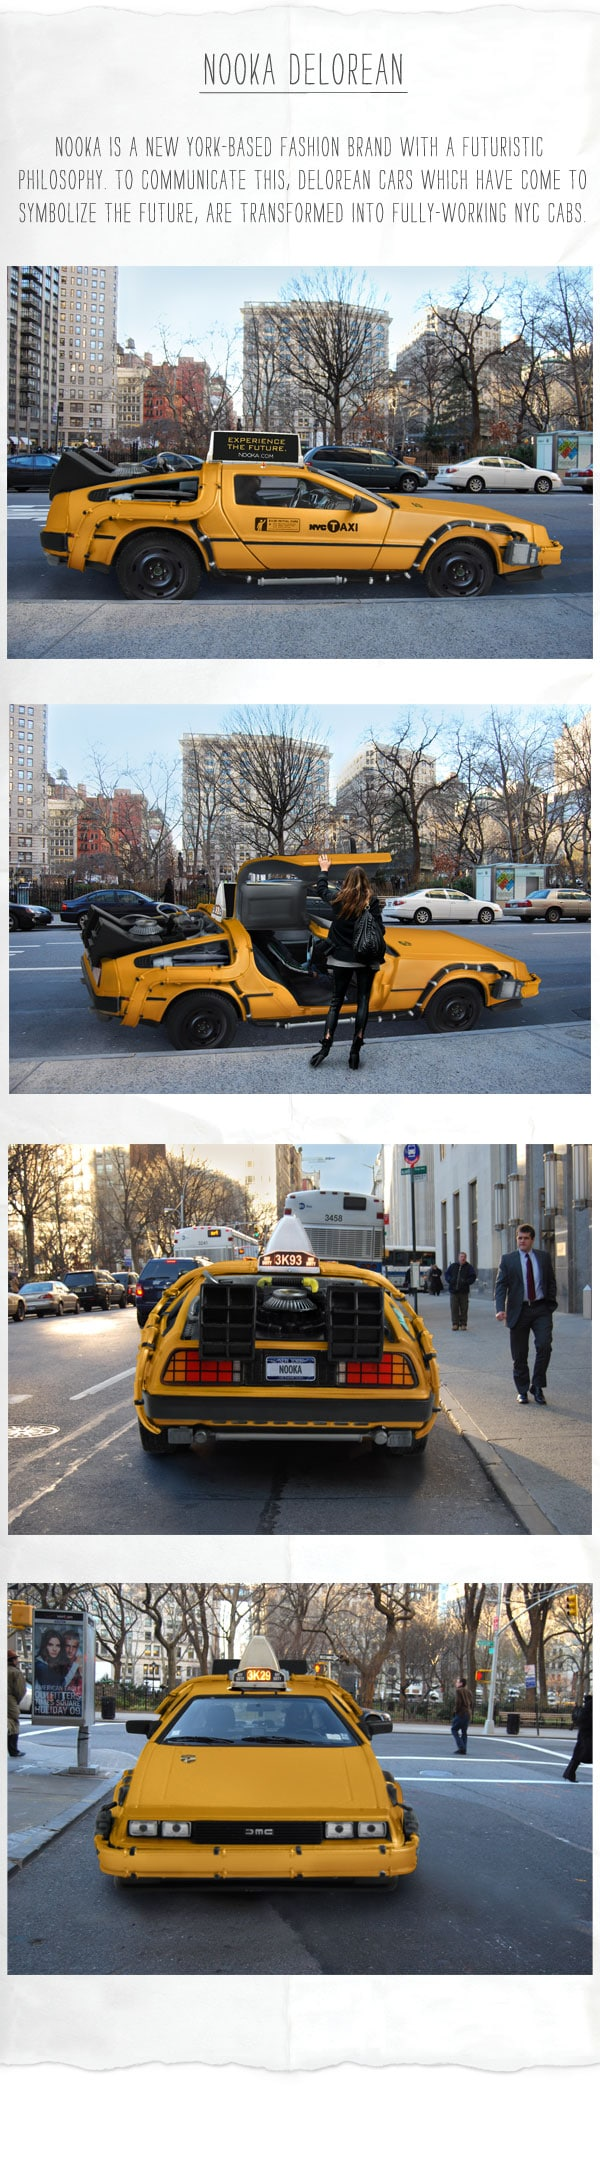 DeLorean Car Becomes The Taxi Of The Future